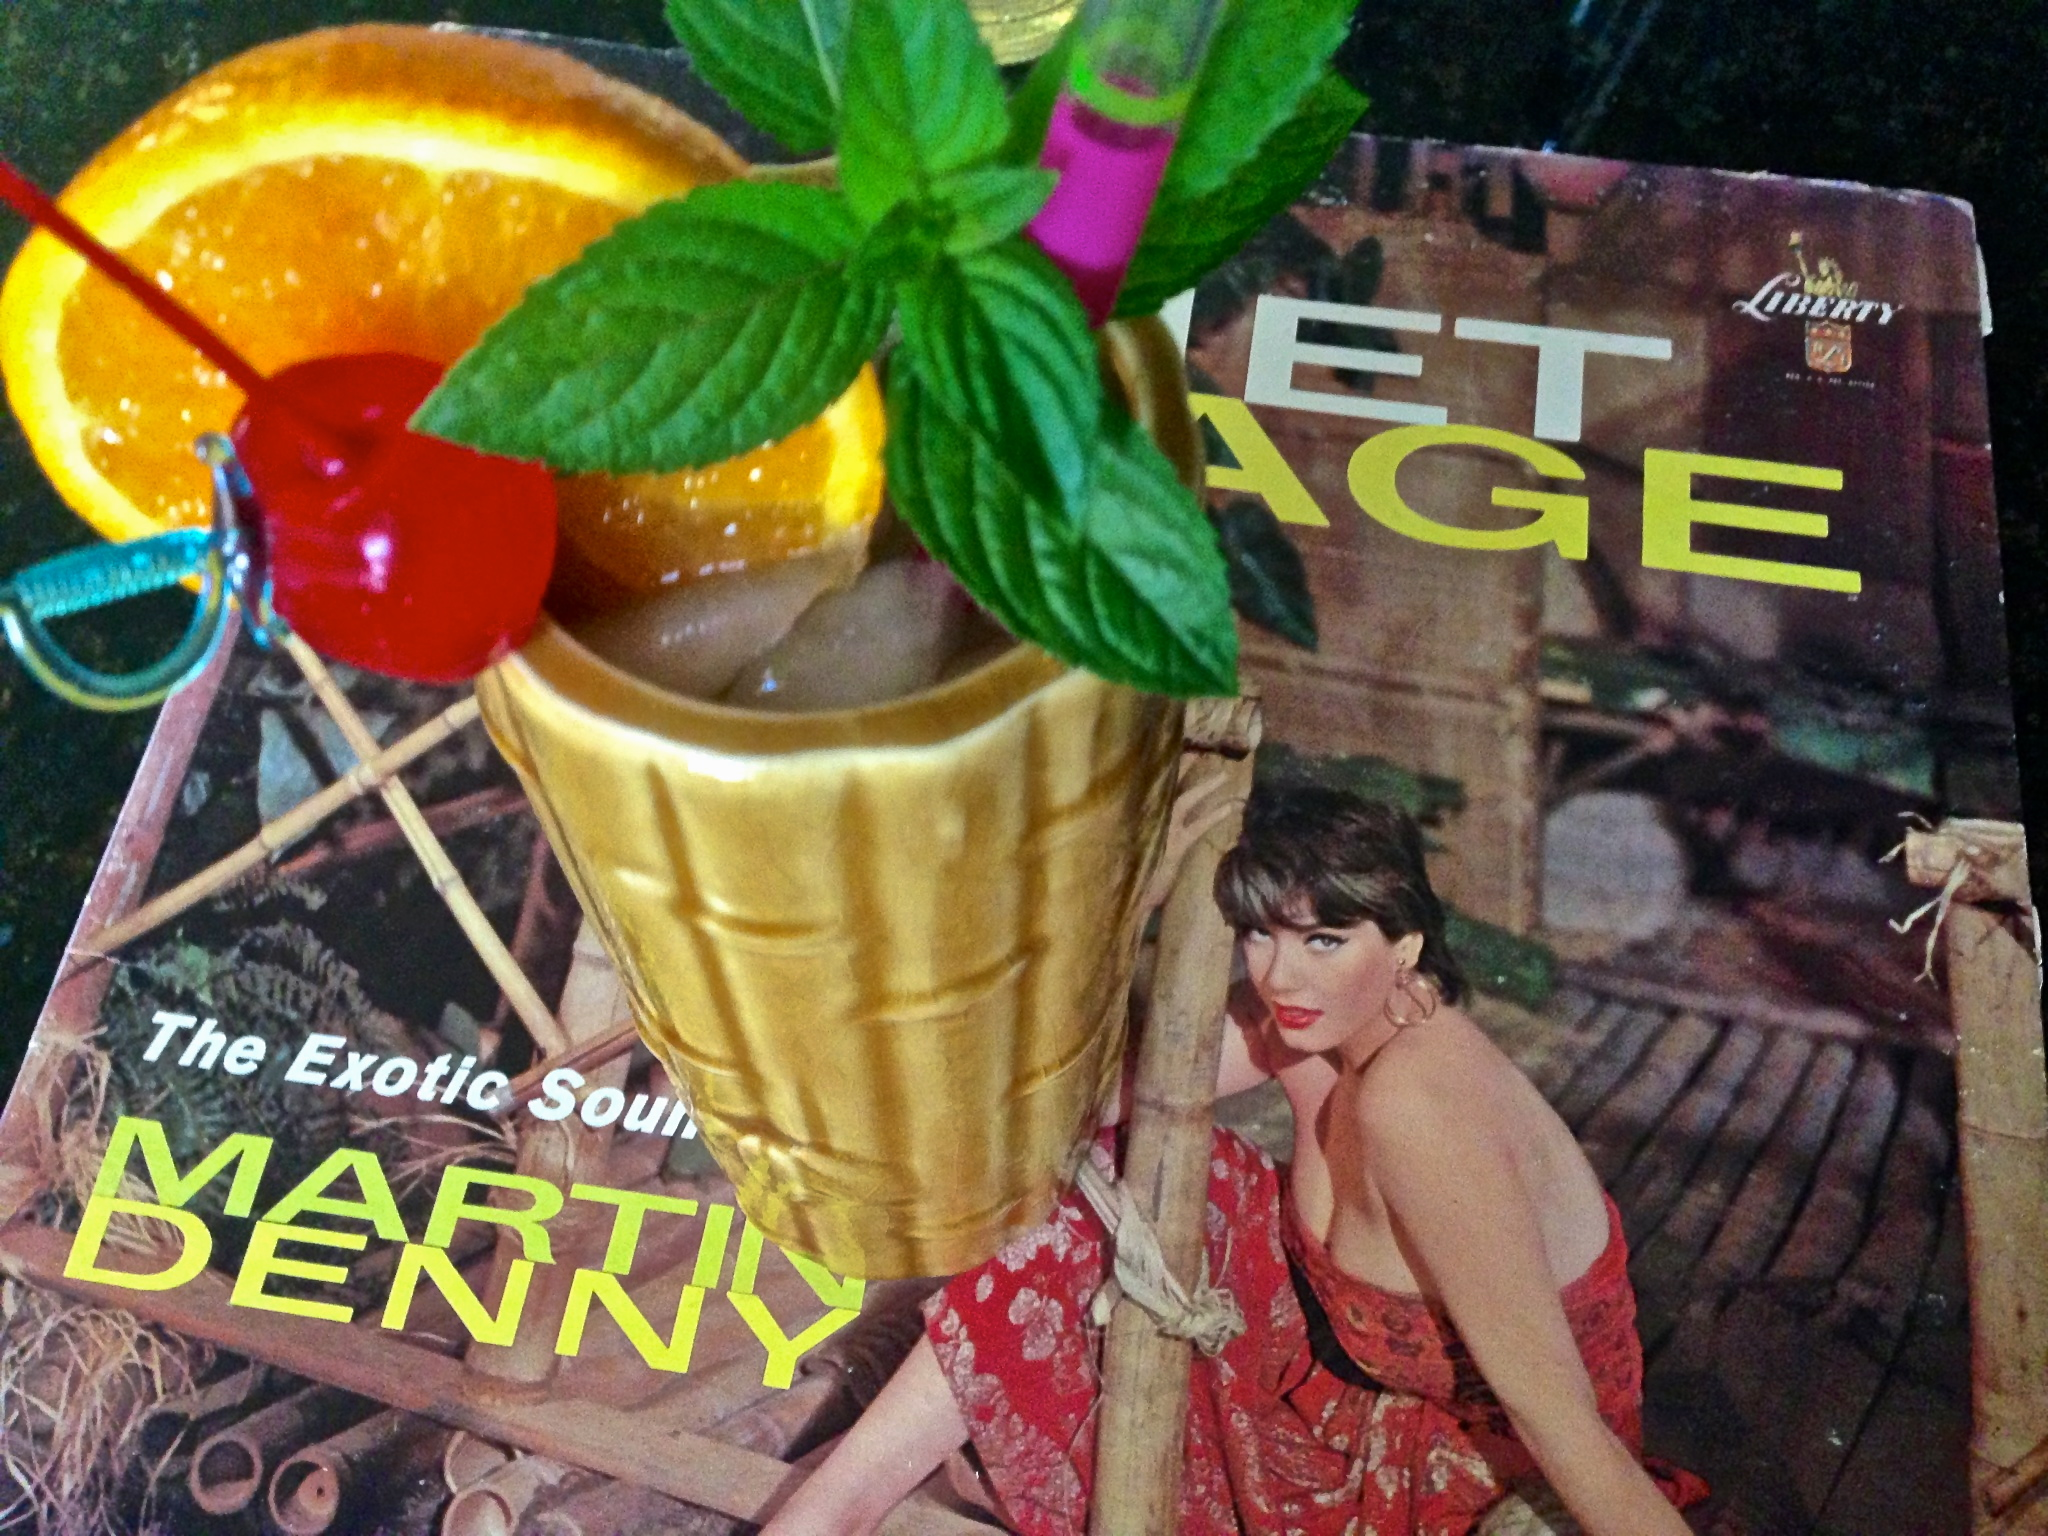 One of our favorite luau drinks. You can make this sucker really strong and the sweetness covers it up. Be careful.